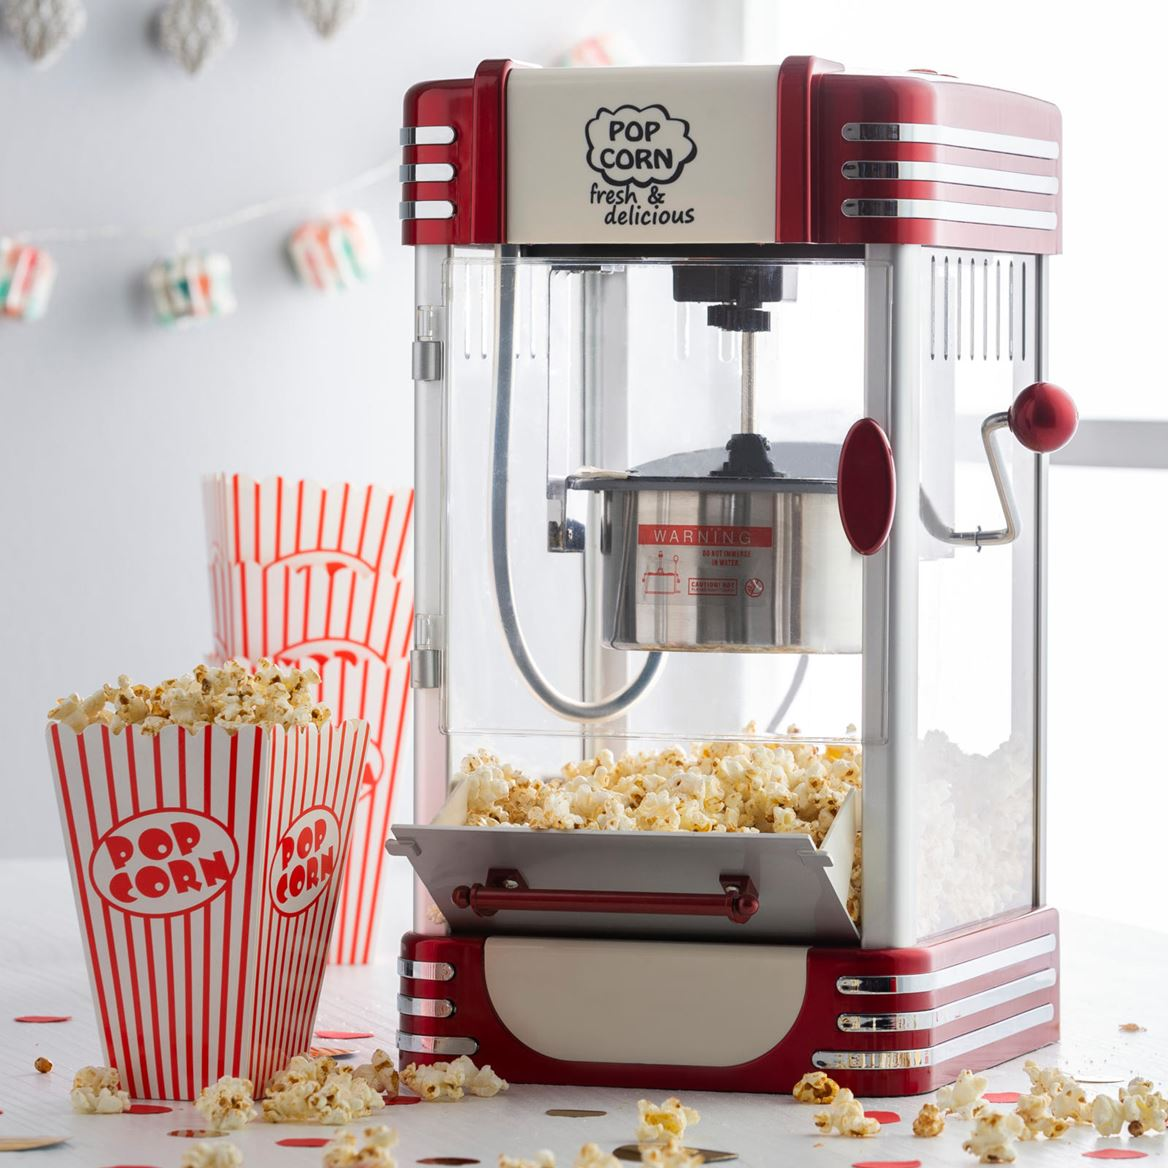 RETRO FUN Machine à pop-corn XL rouge H 45 x Larg. 28 x P 24 cm_retro-fun-machine-à-pop-corn-xl-rouge-h-45-x-larg--28-x-p-24-cm